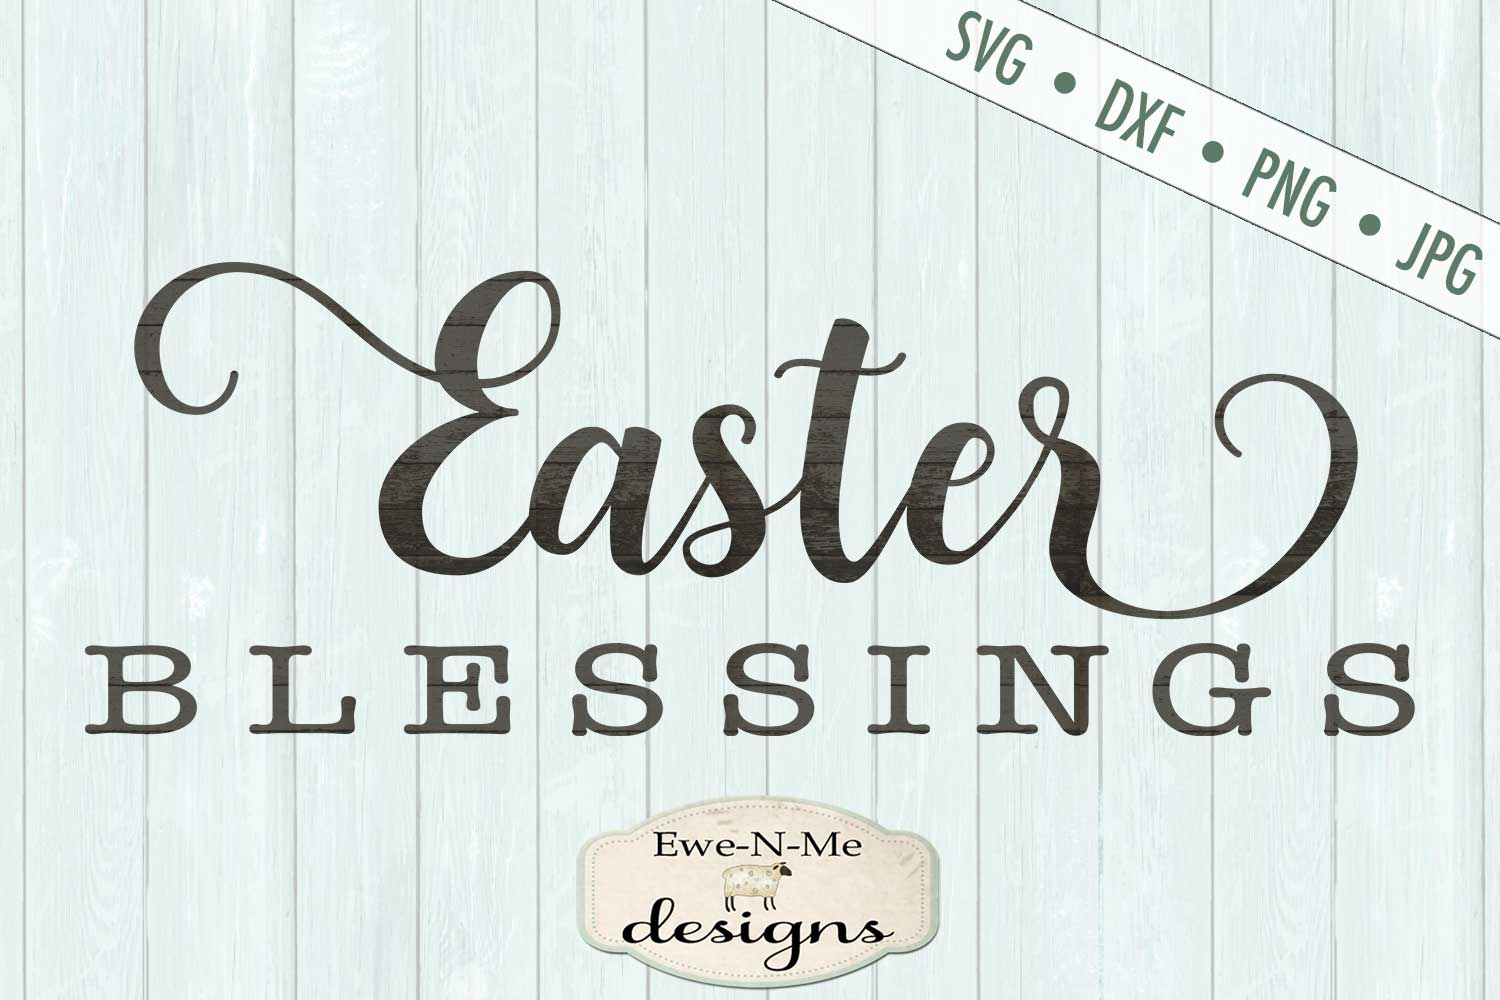 Easter Blessings SVG DXF Files example image 2